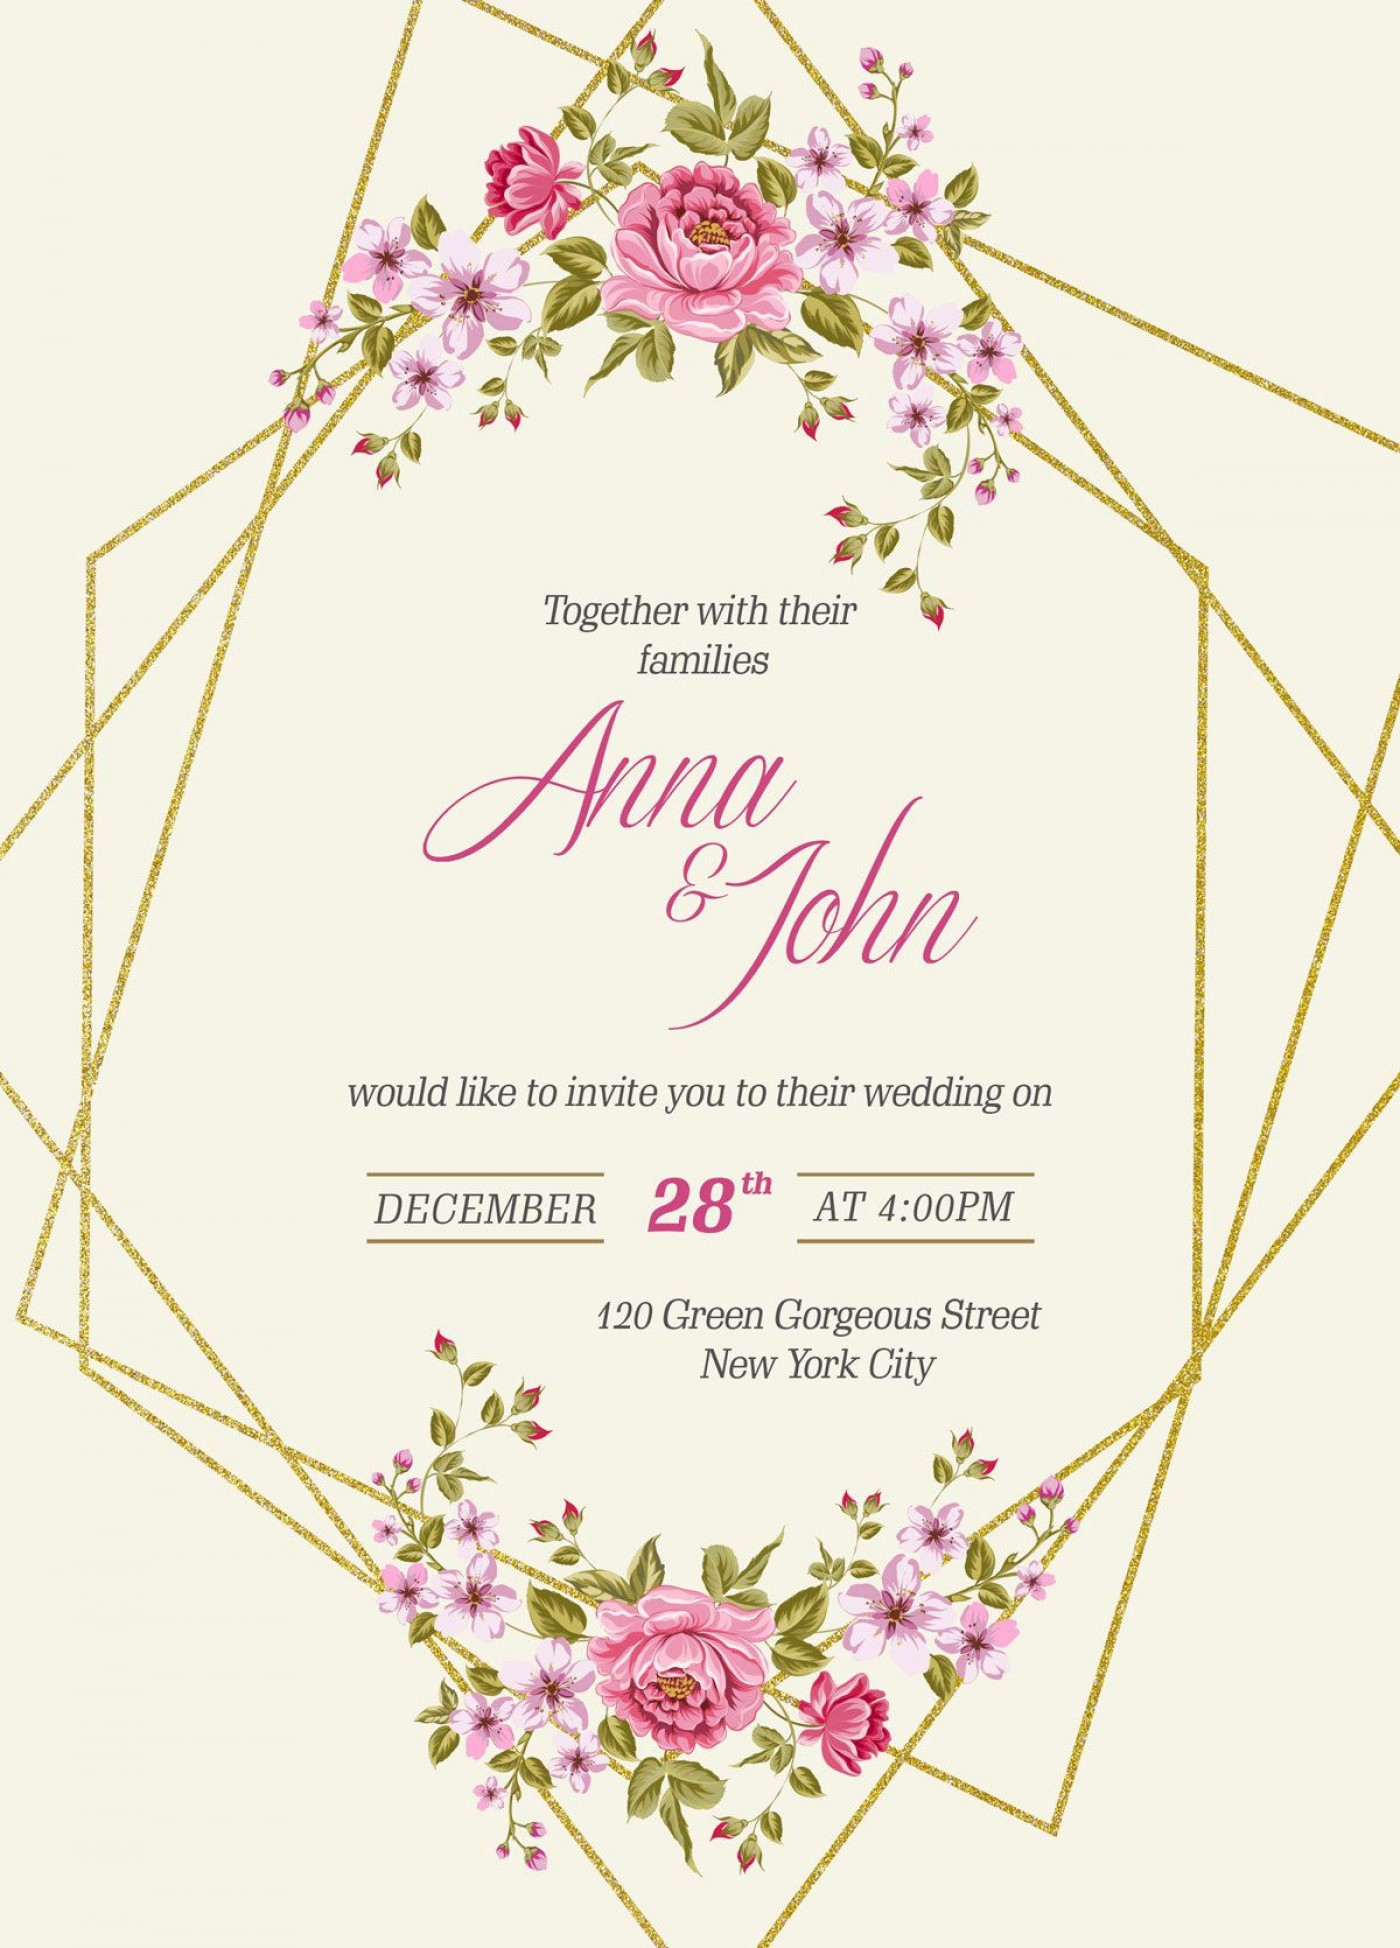 007 Outstanding Free Download Invitation Card Template Psd Image  Indian Wedding Birthday1400